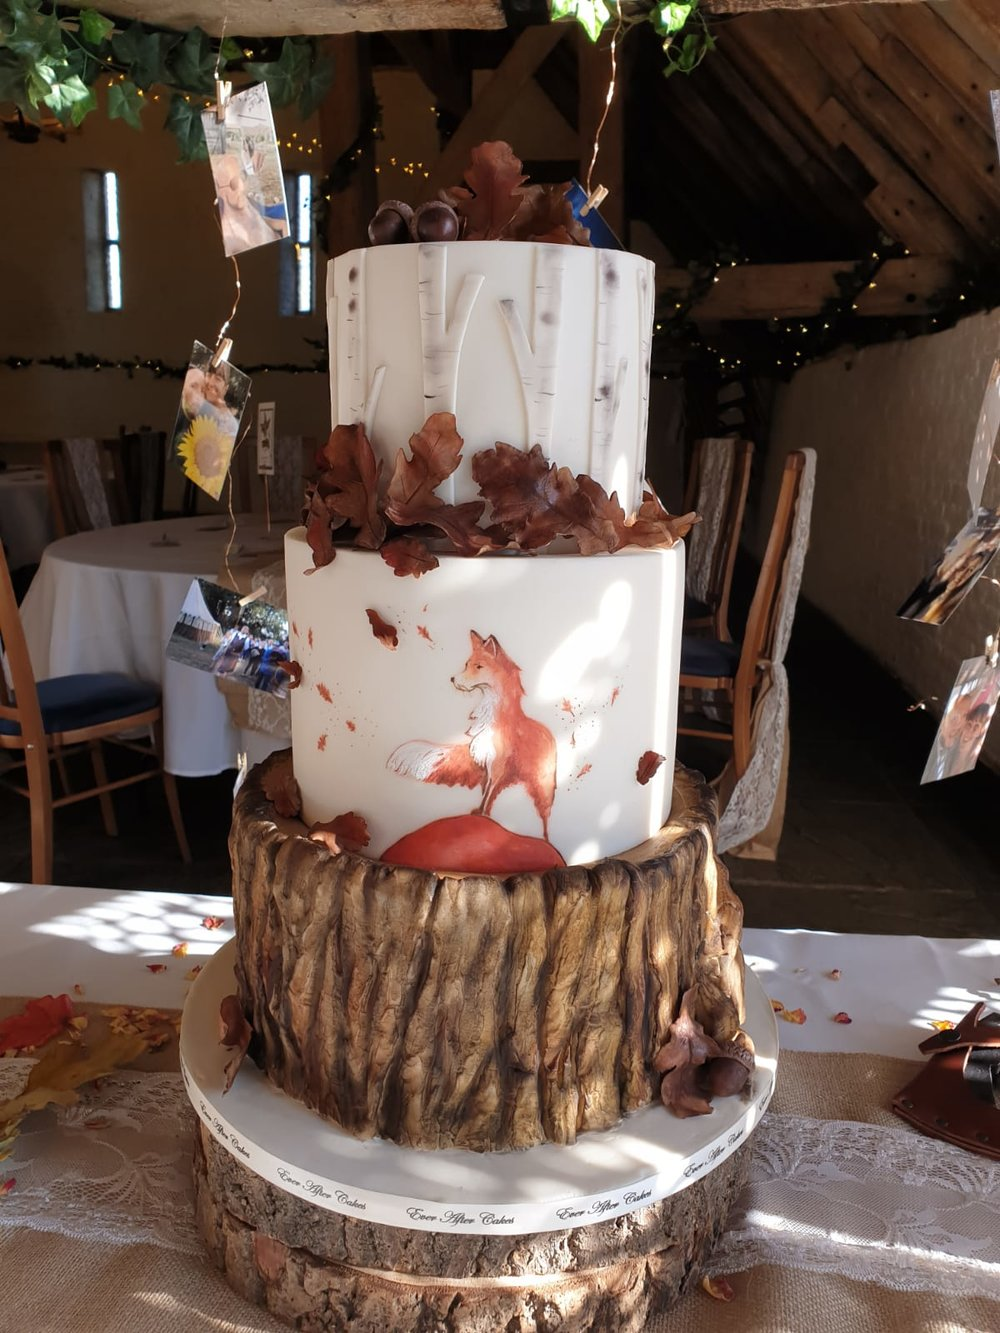 Fox in rustic venue